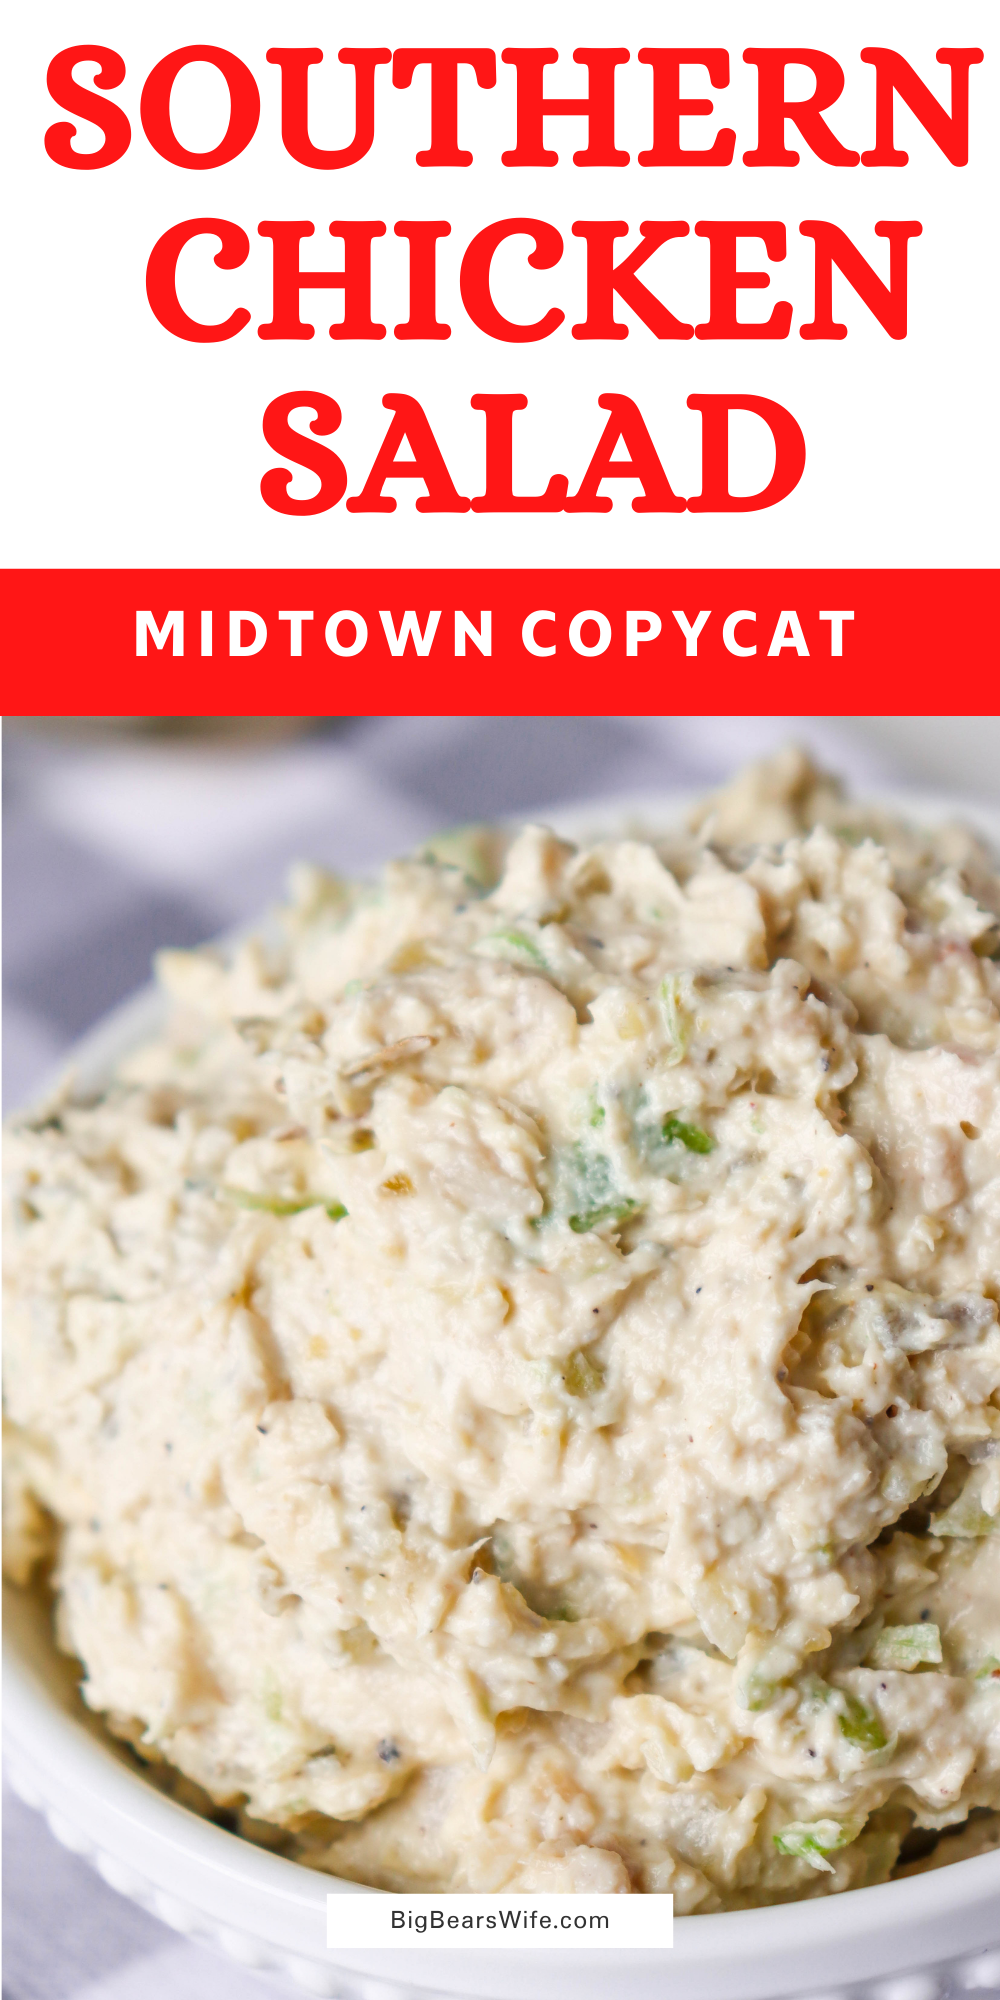 This Southern Chicken Salad Recipe is great for Chicken Salad Sandwiches or as a spread for crackers. My Southern Chicken Salad Recipe is my copycat version of the famous Midtown Market Chicken Salad!  via @bigbearswife